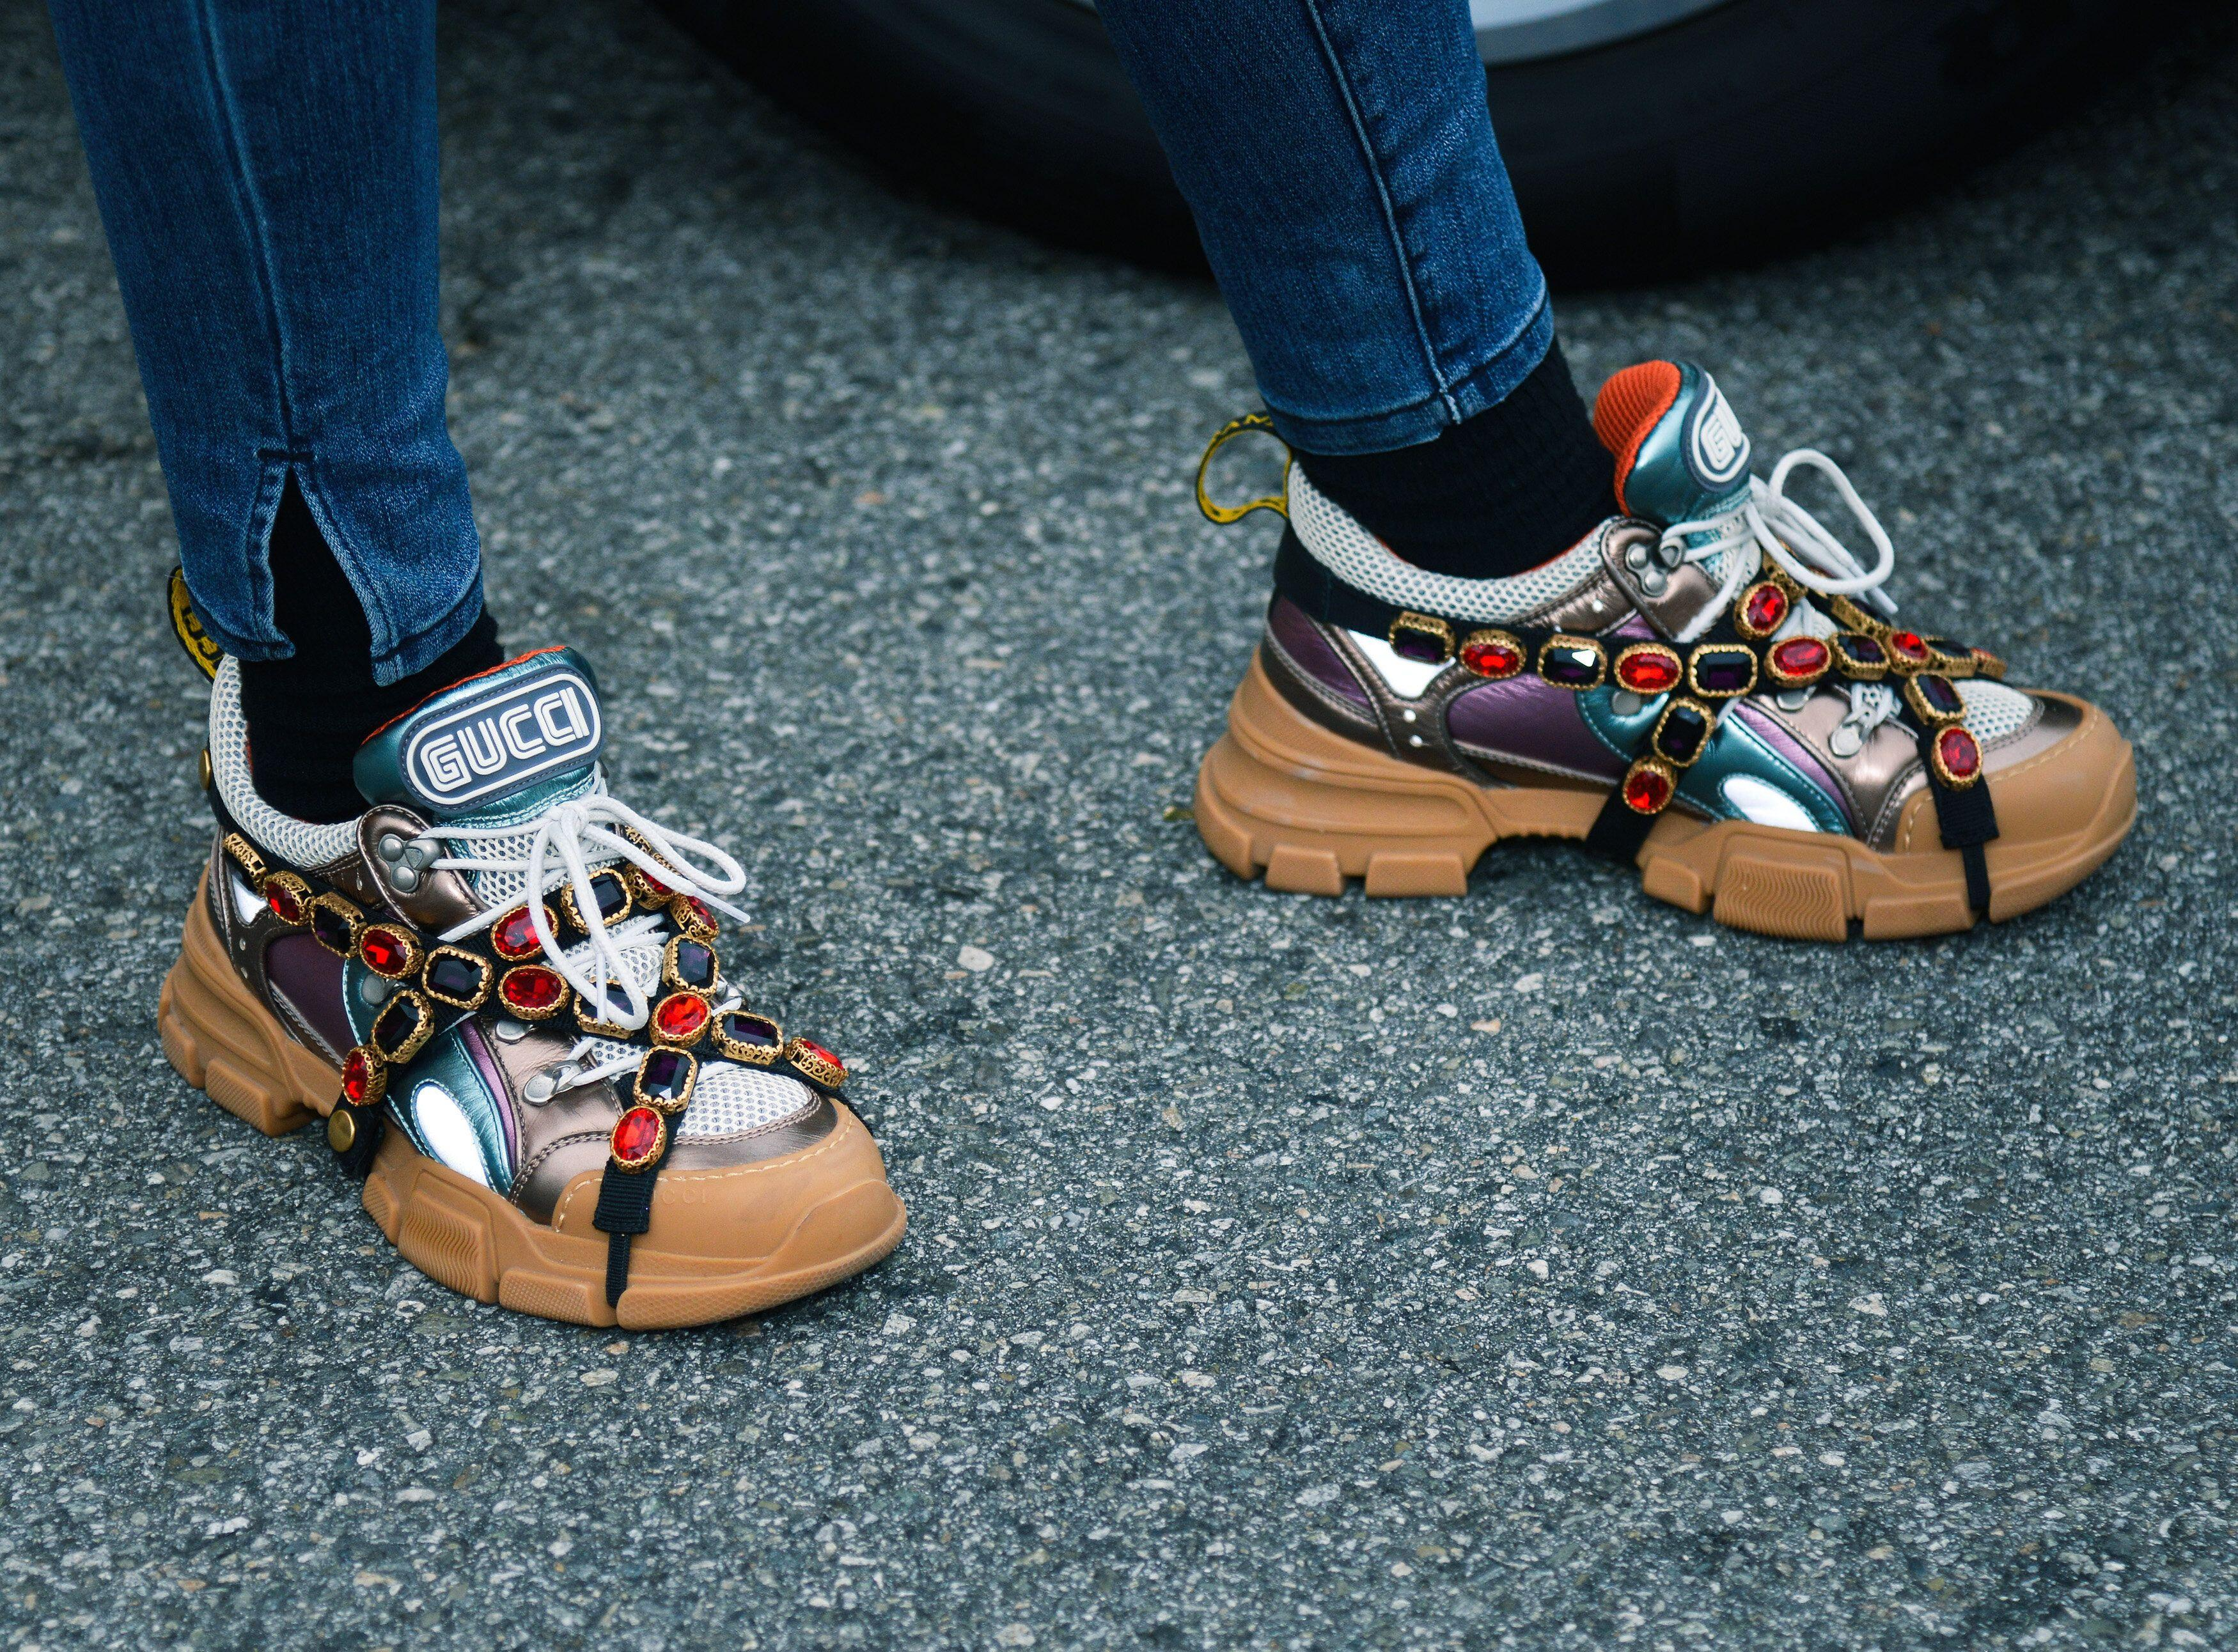 Gucci, Sperry prove athleisure isn't